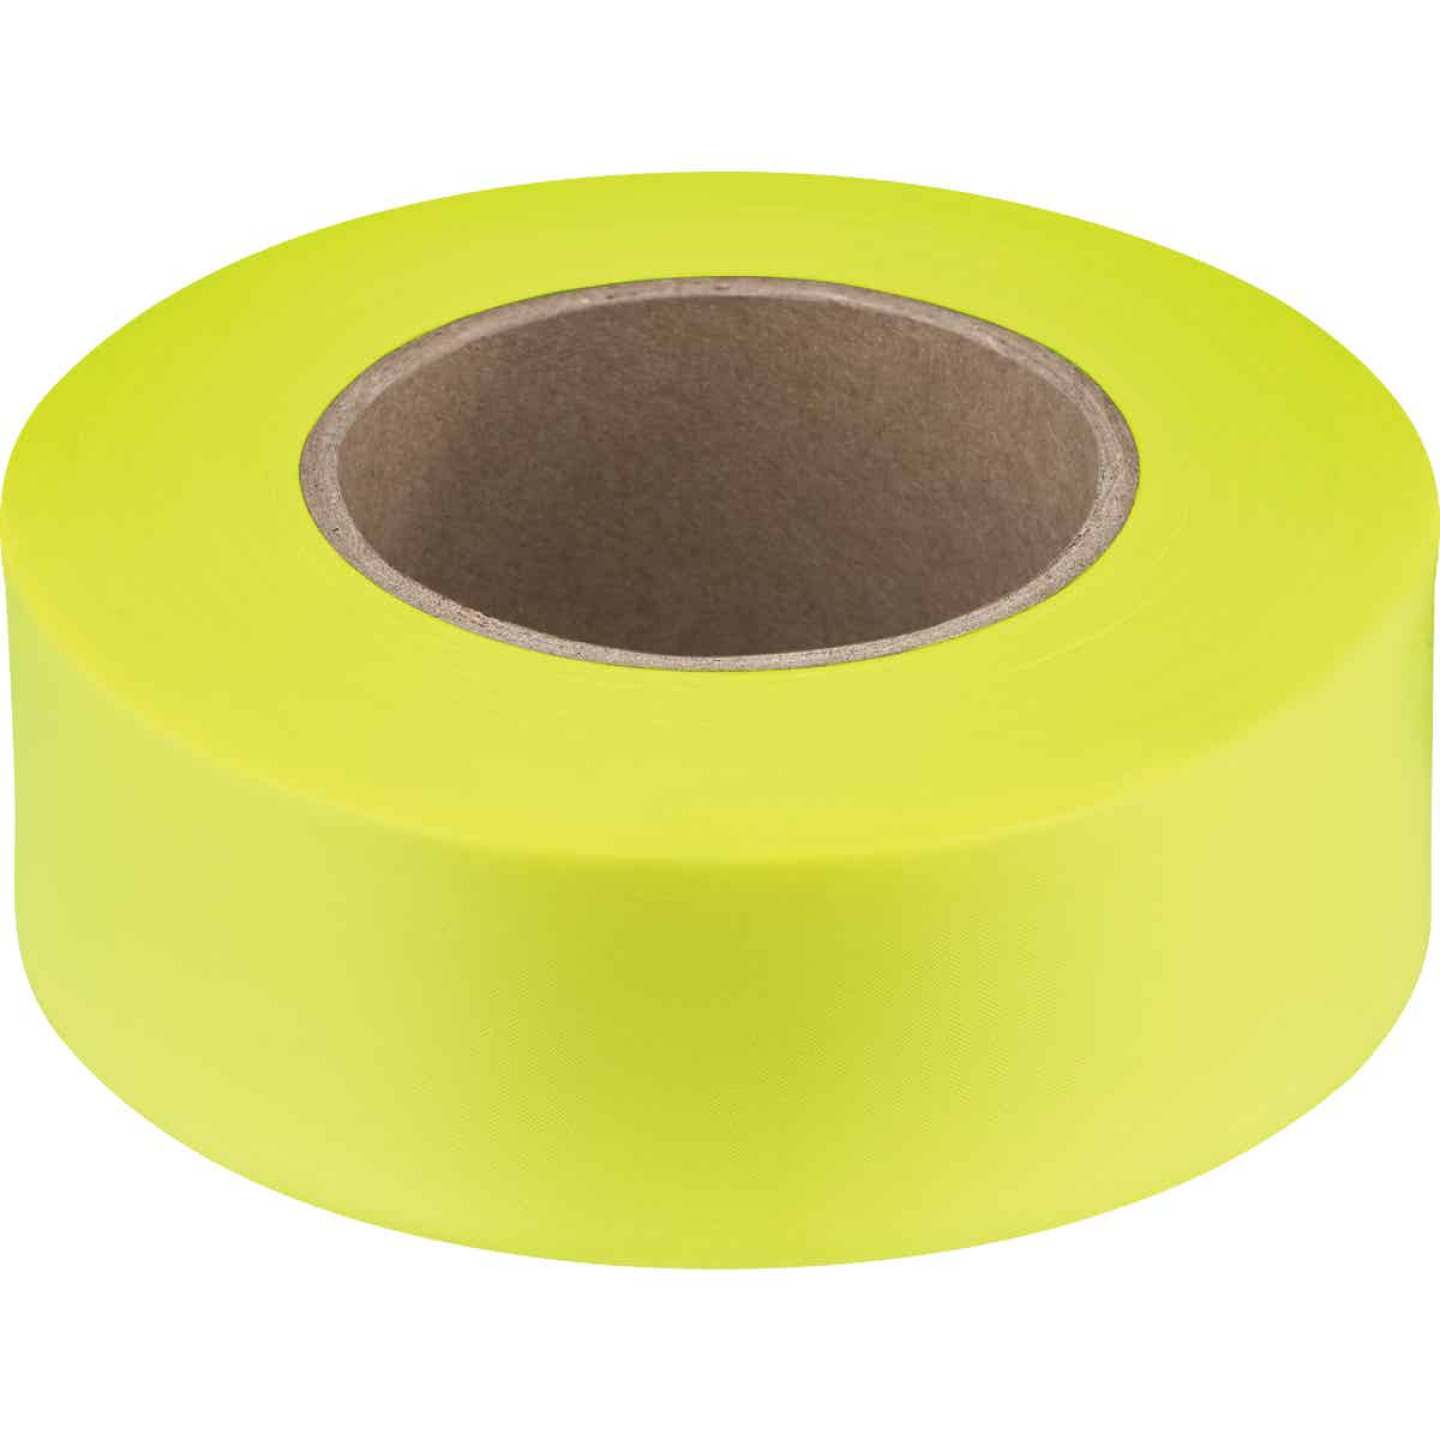 Empire 200 Ft. x 1 In. Yellow Flagging Tape Image 1